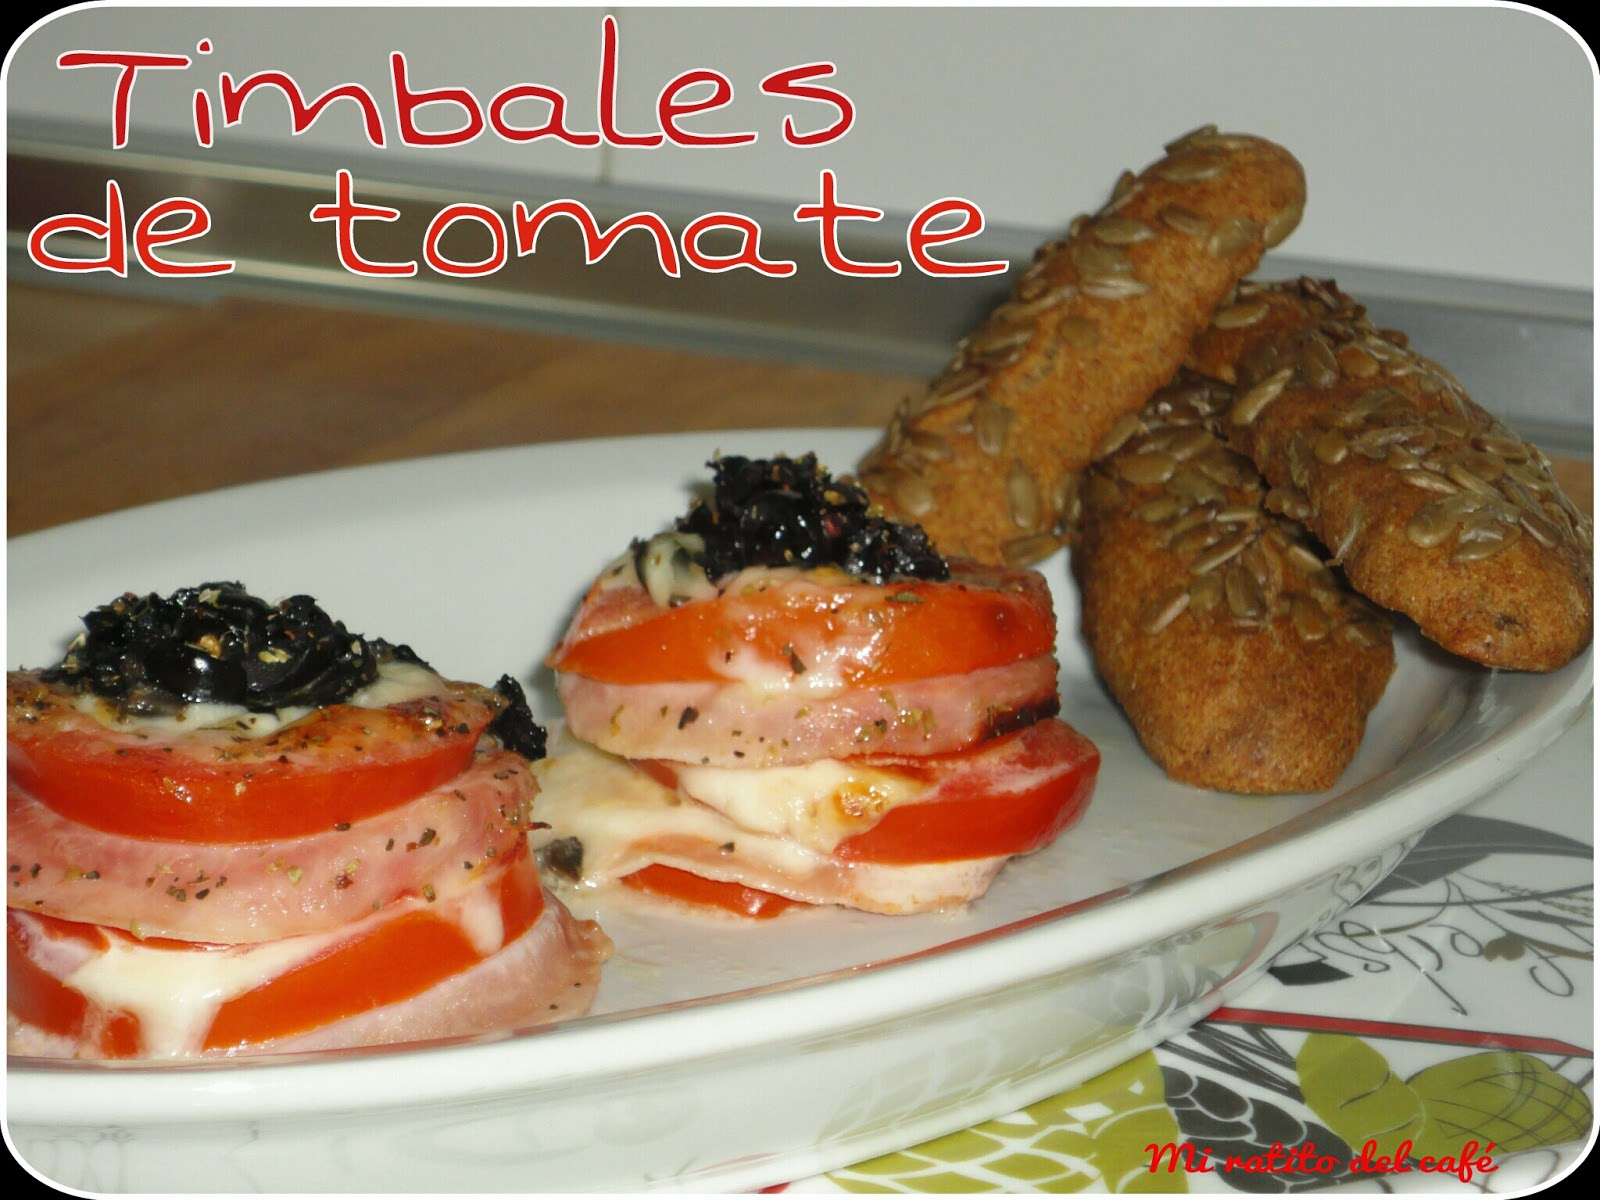 Timbales de tomate